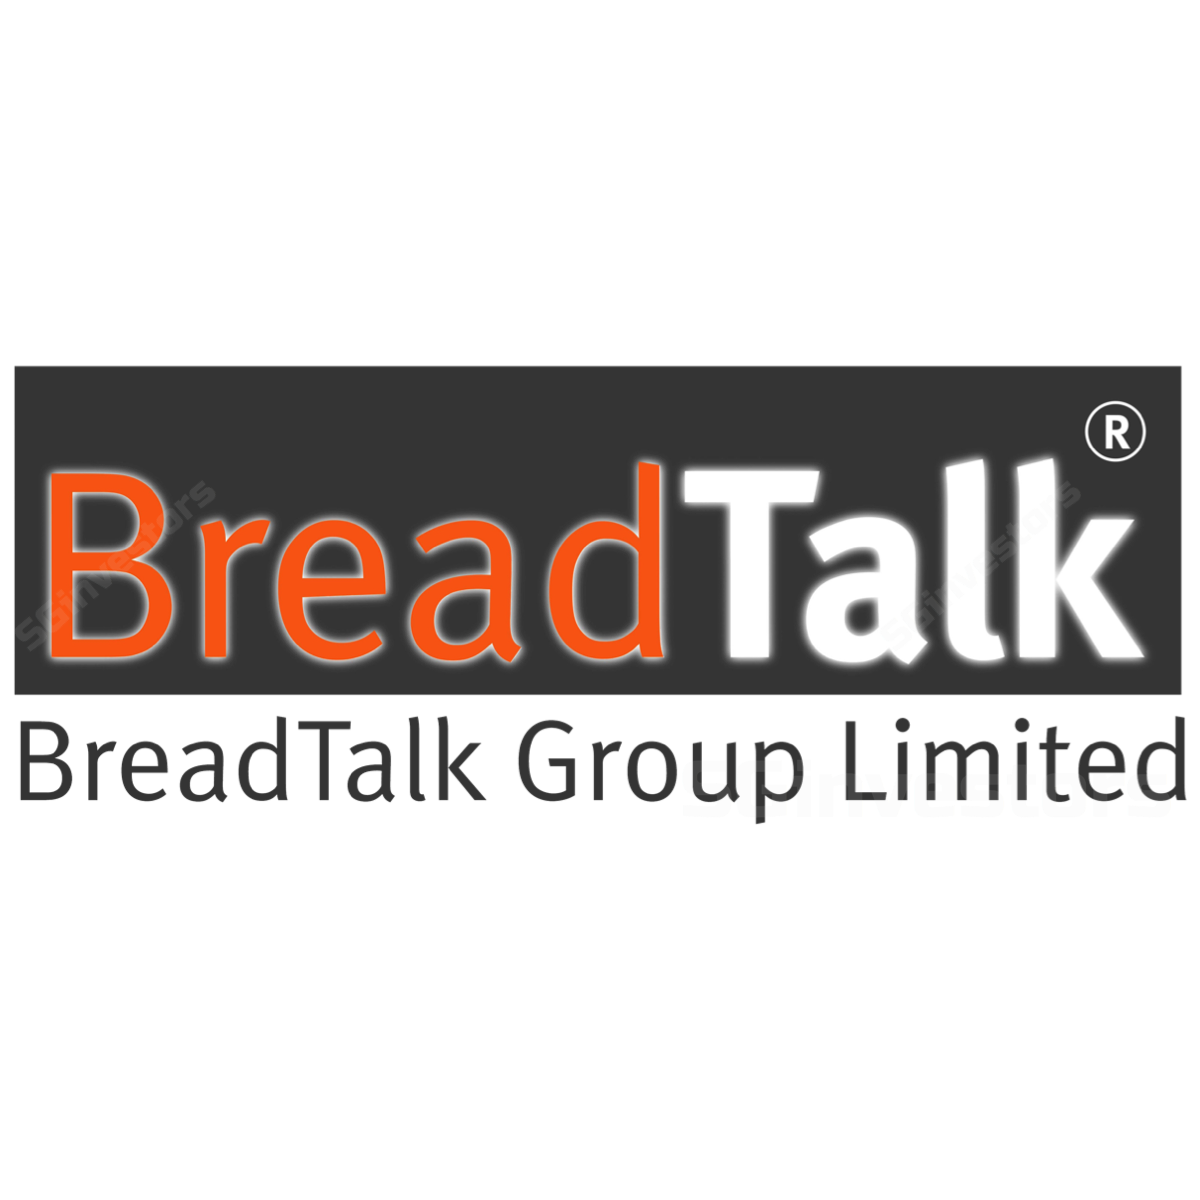 BreadTalk Group Ltd - DBS Vickers 2018-05-07: Margin Expansion To Drive Growth